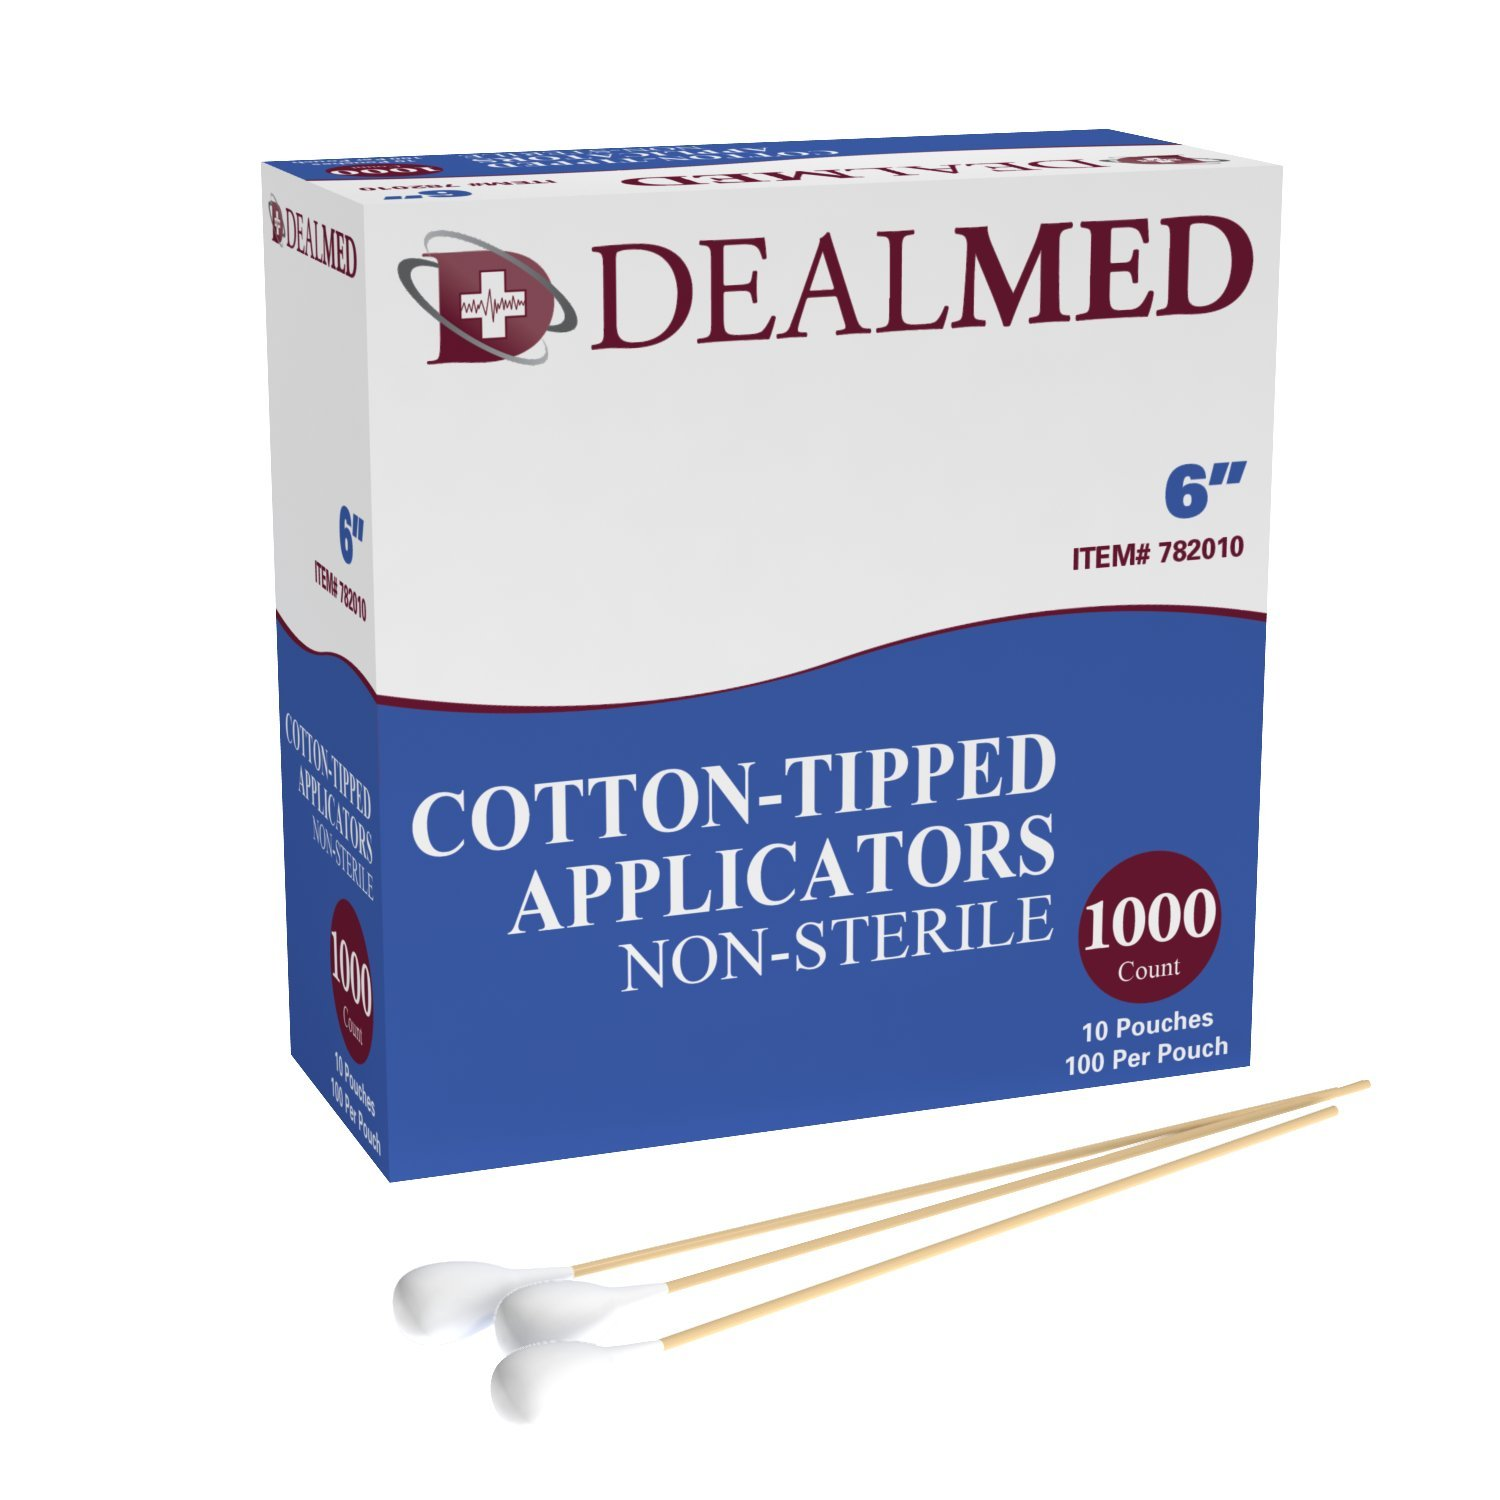 Dealmed Cotton Tipped Applicator with Wooden Shaft, 6 inches, 1000 Per Box by Dealmed (Image #1)